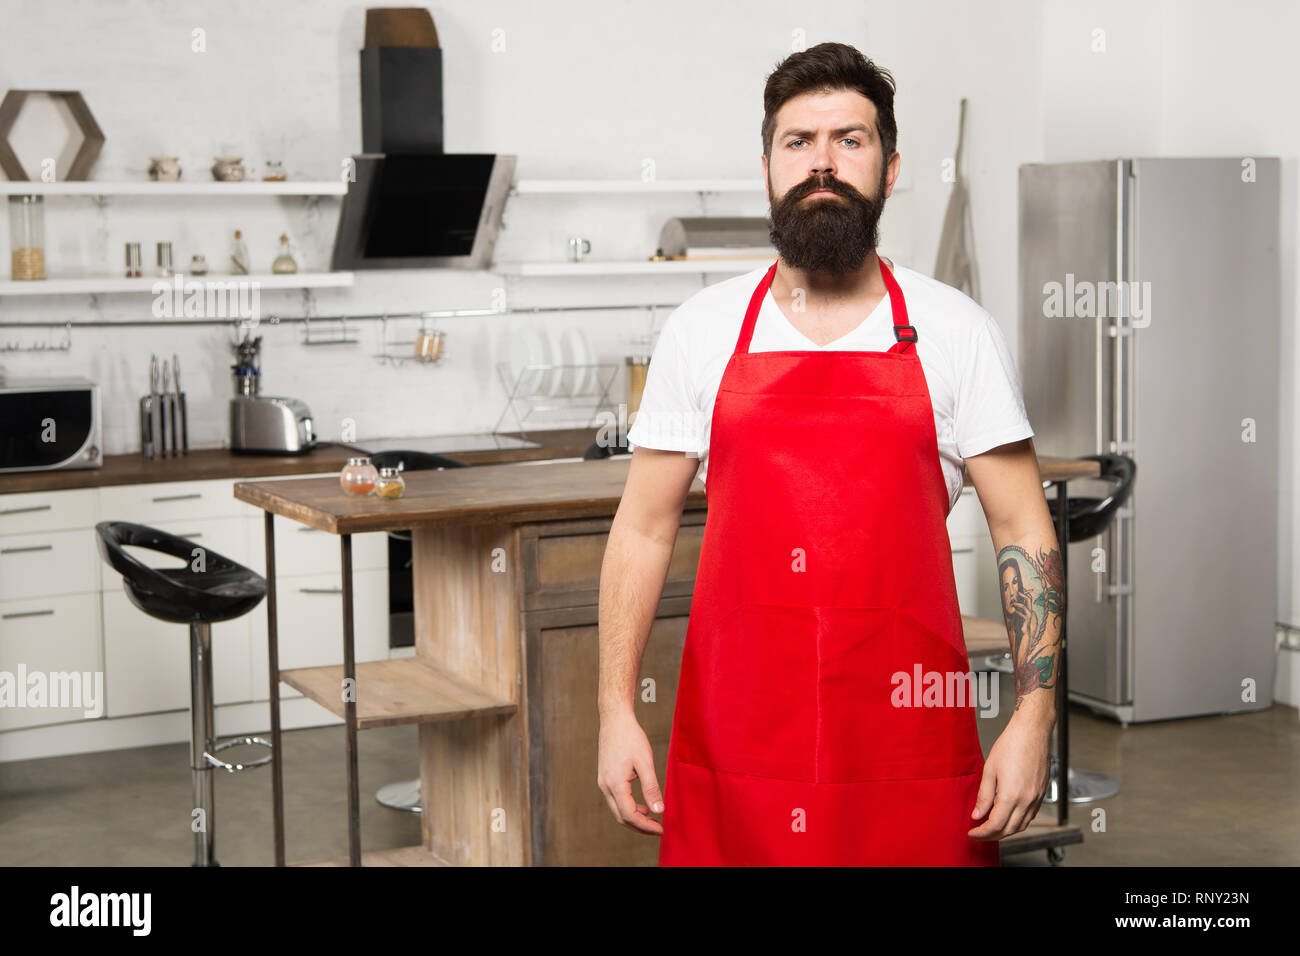 Ready to work. Man chef cooking. Mature male. Bearded man cook. Restaurant or cafe cook. Hipster in kitchen. Bearded man in red apron. Male chef in white uniform. Professional chef in kitchen. - Stock Image